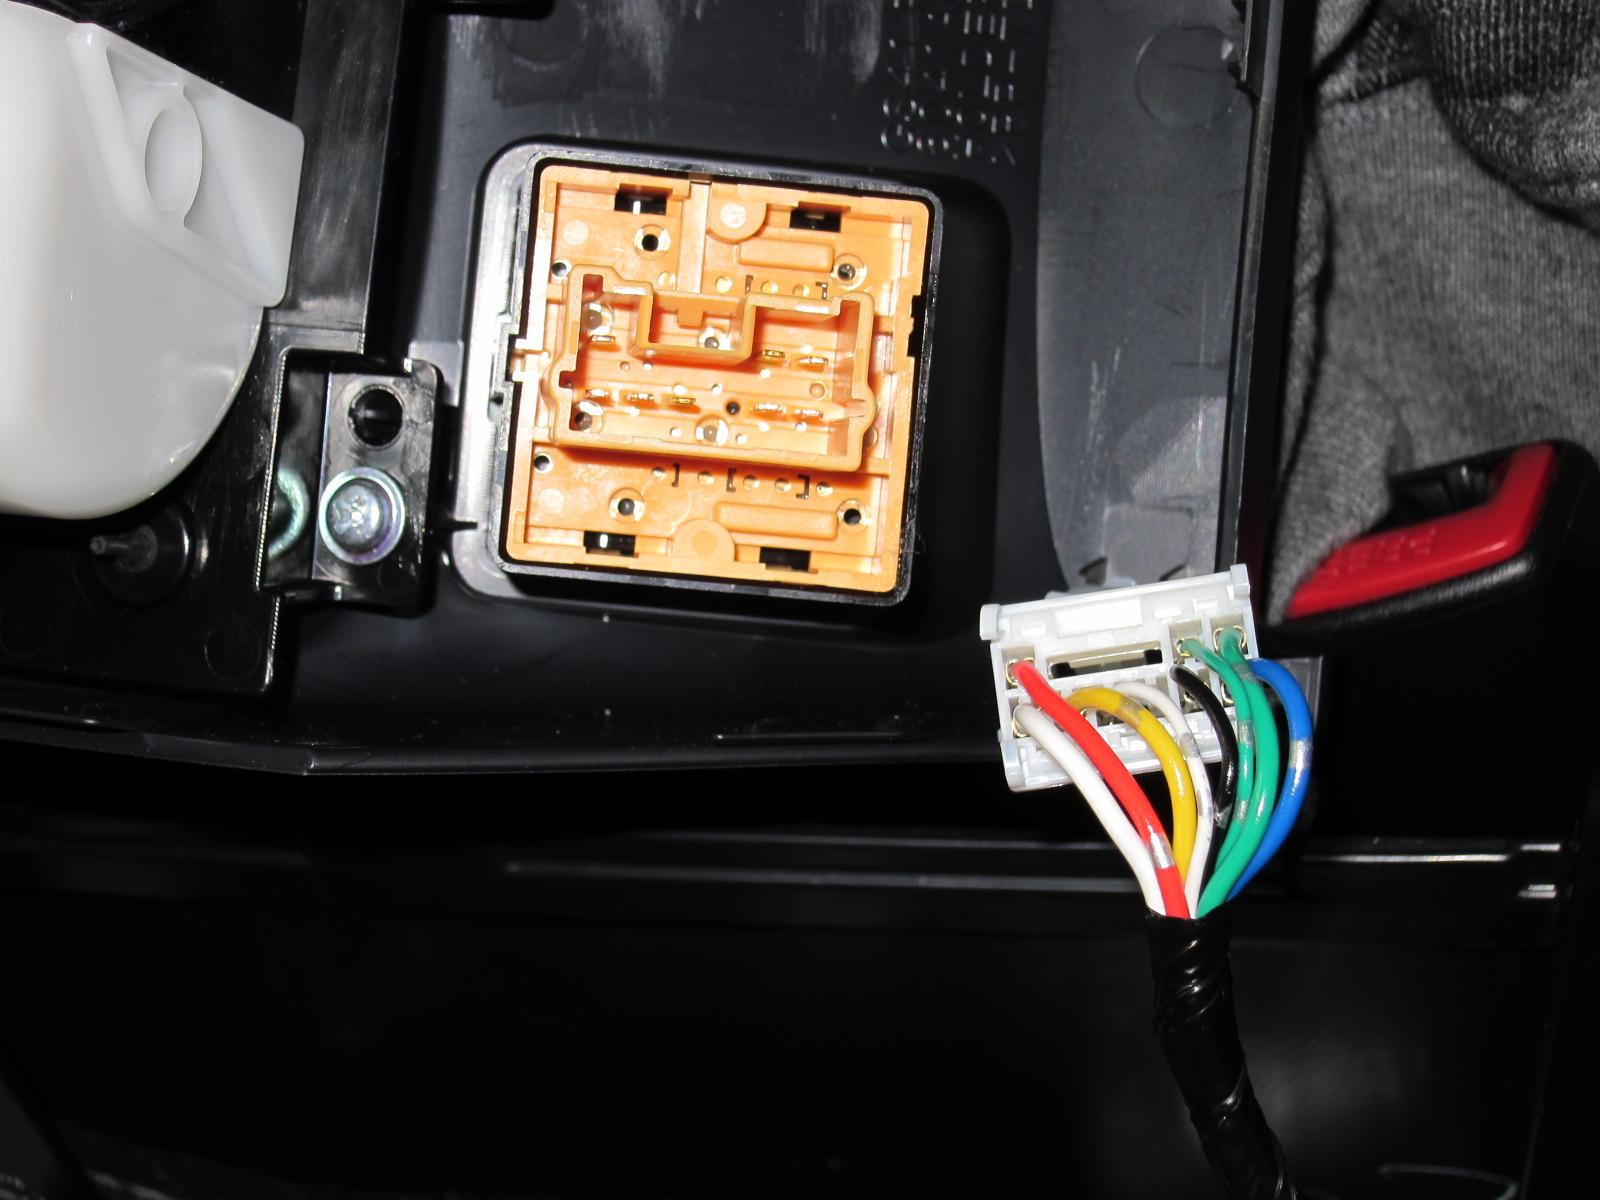 cj lancer wiring diagram 7 way trailer plug ford f250 seat heater and switch page 4 clubcj the